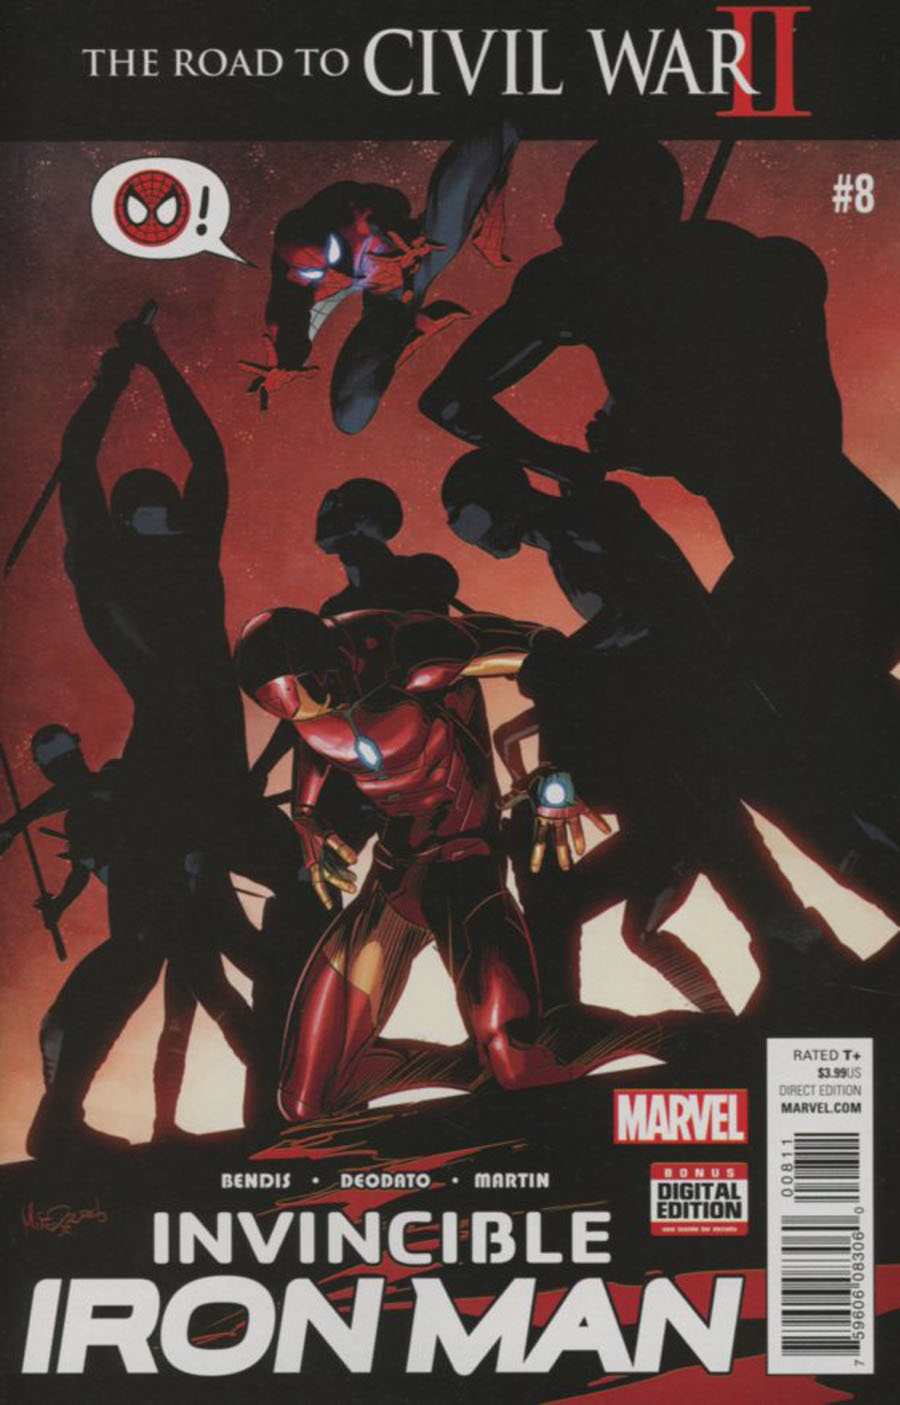 Invincible Iron Man Vol 2 #8 Cover A 1st Ptg (Road To Civil War II Tie-In)